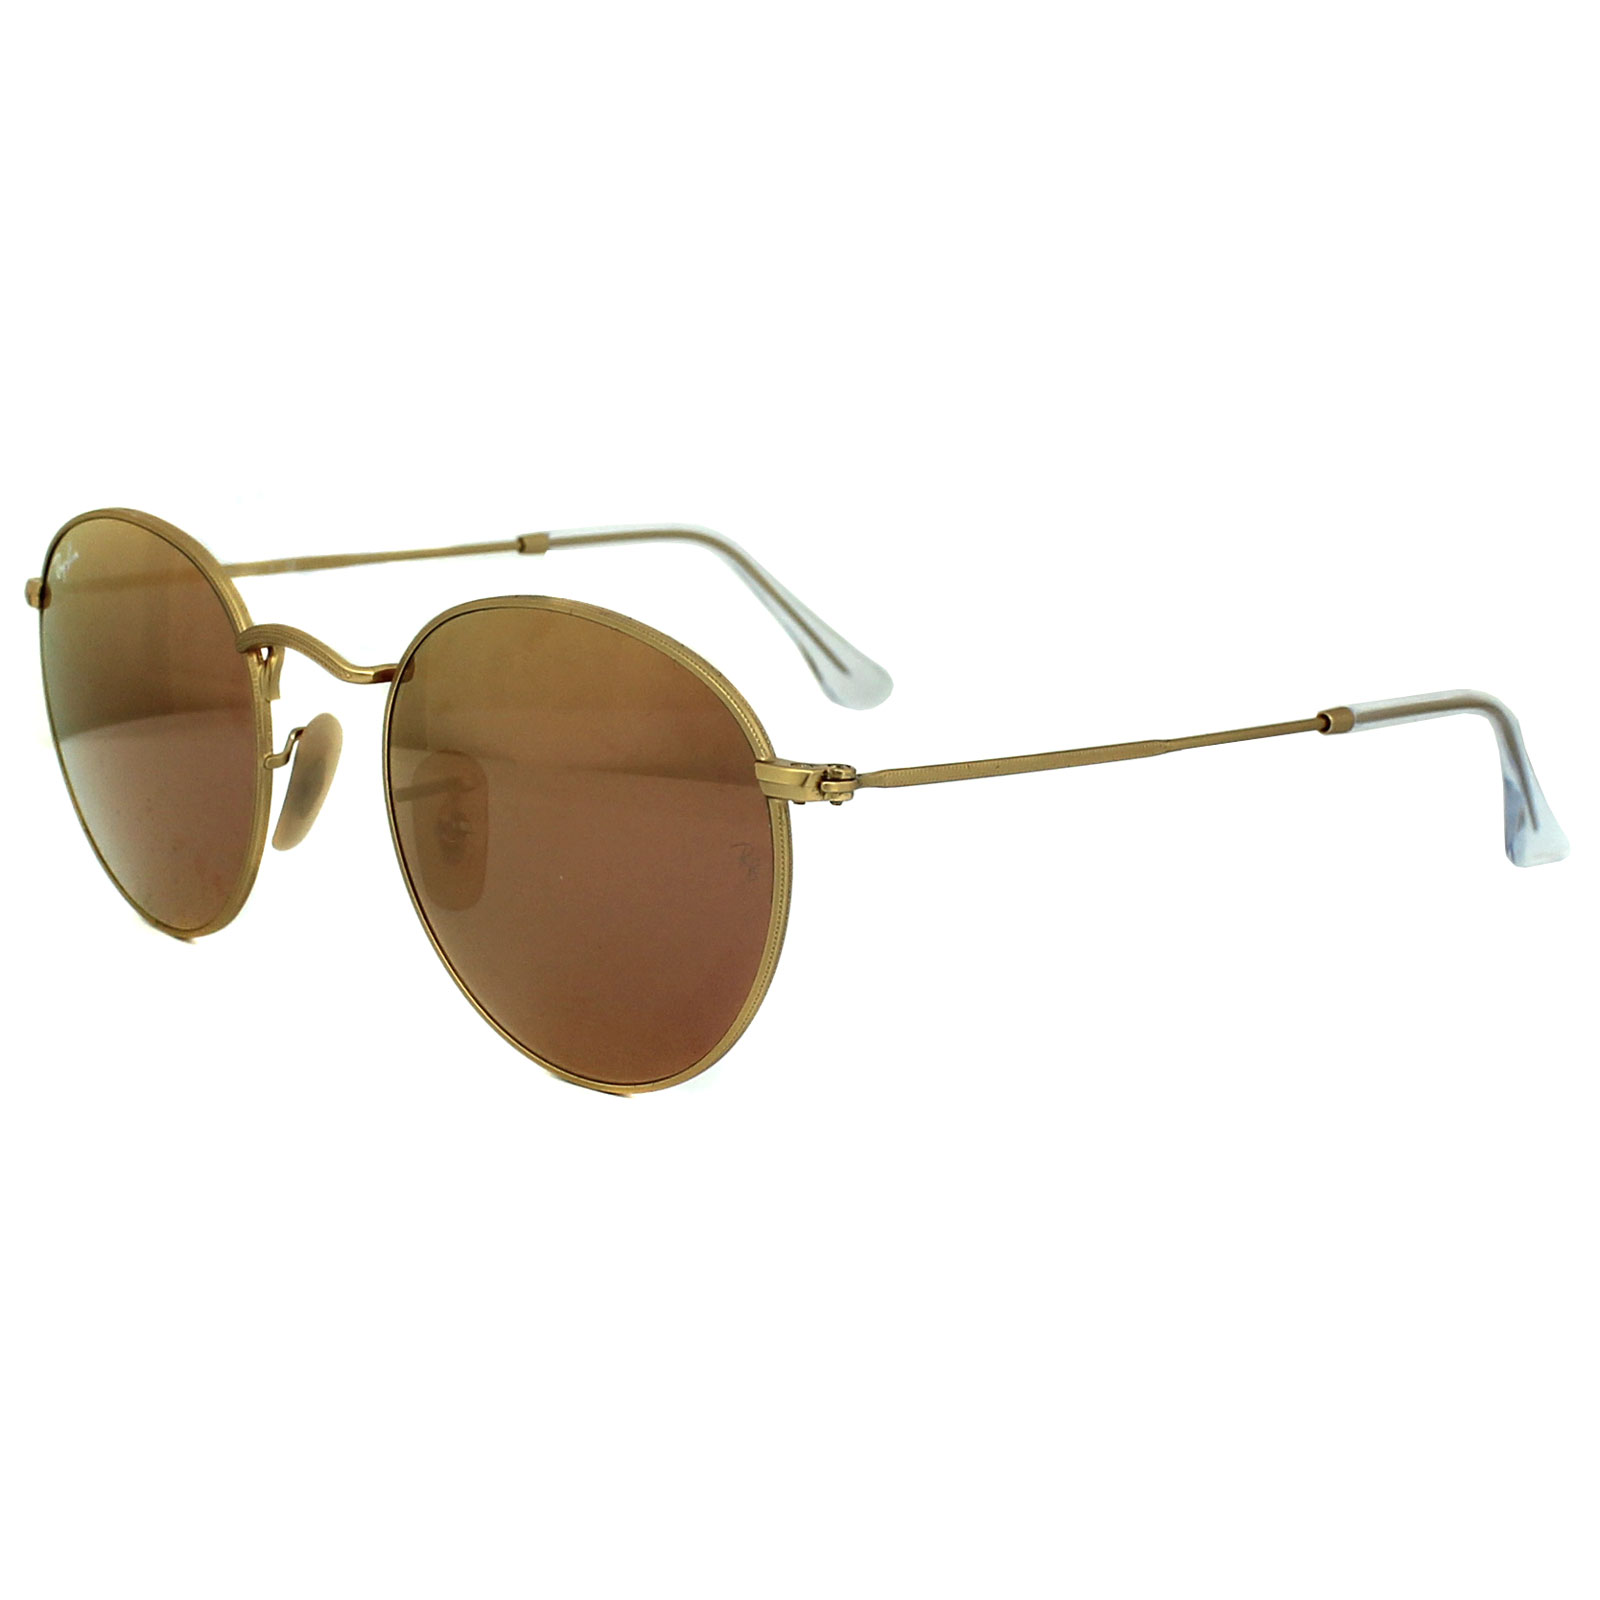 ray ban sunglasses round metal 3447 112 z2 gold copper flash mirror ebay. Black Bedroom Furniture Sets. Home Design Ideas